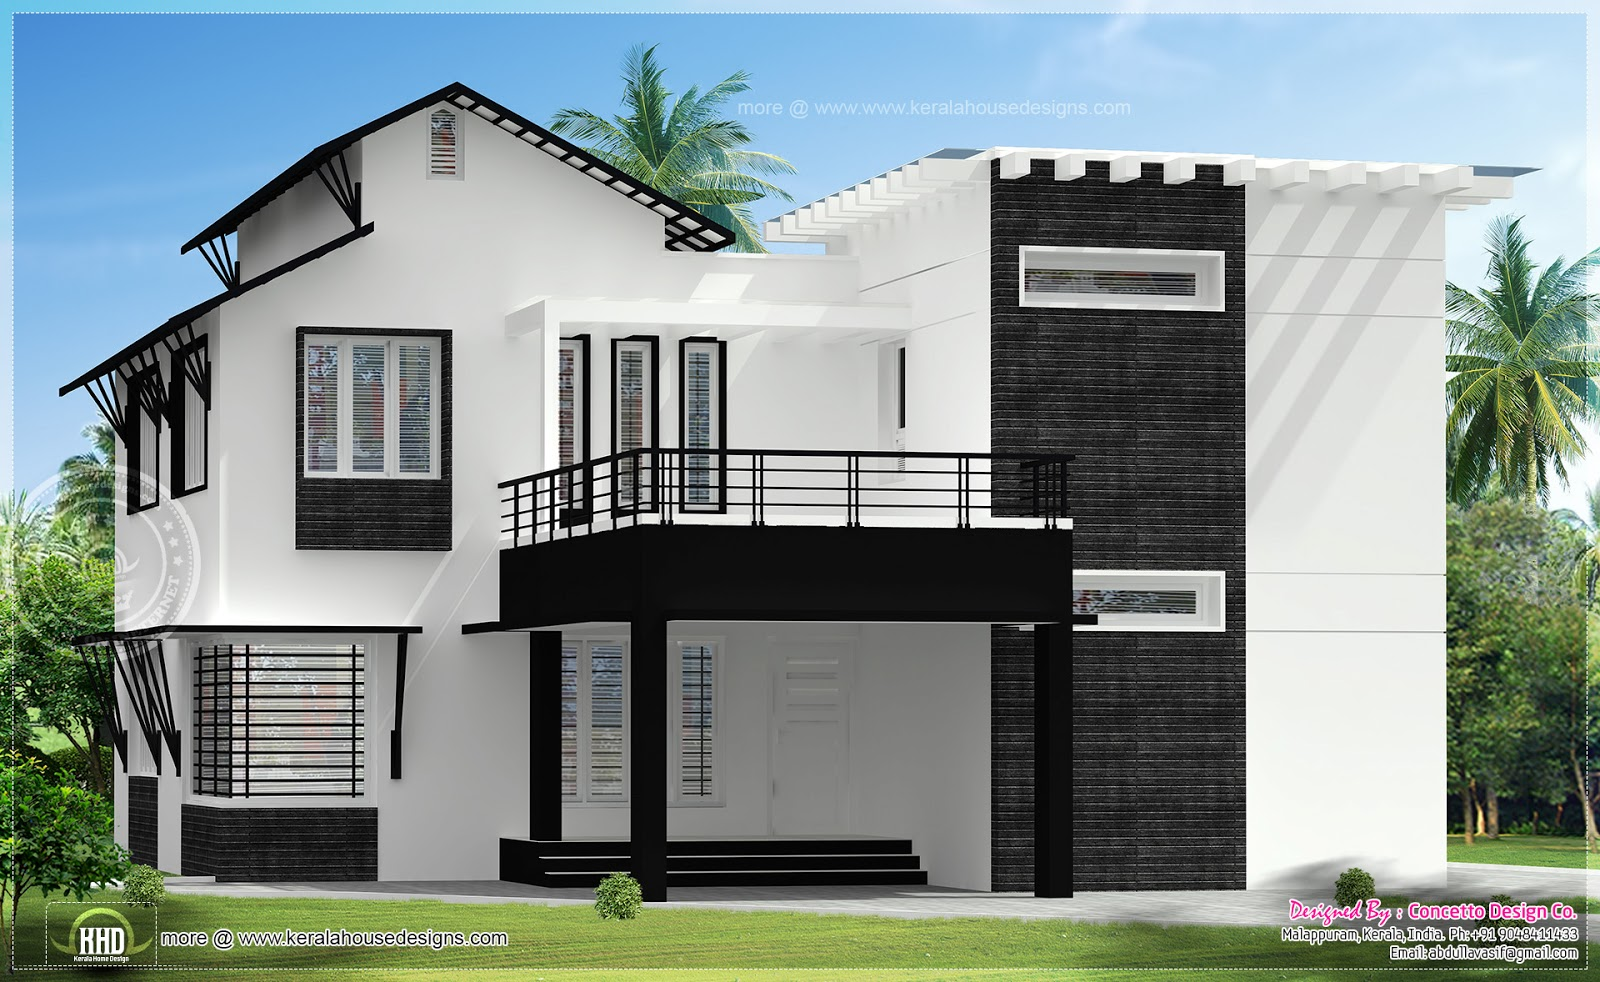 Top Floor Elevation : Different house exteriors by concetto design kerala